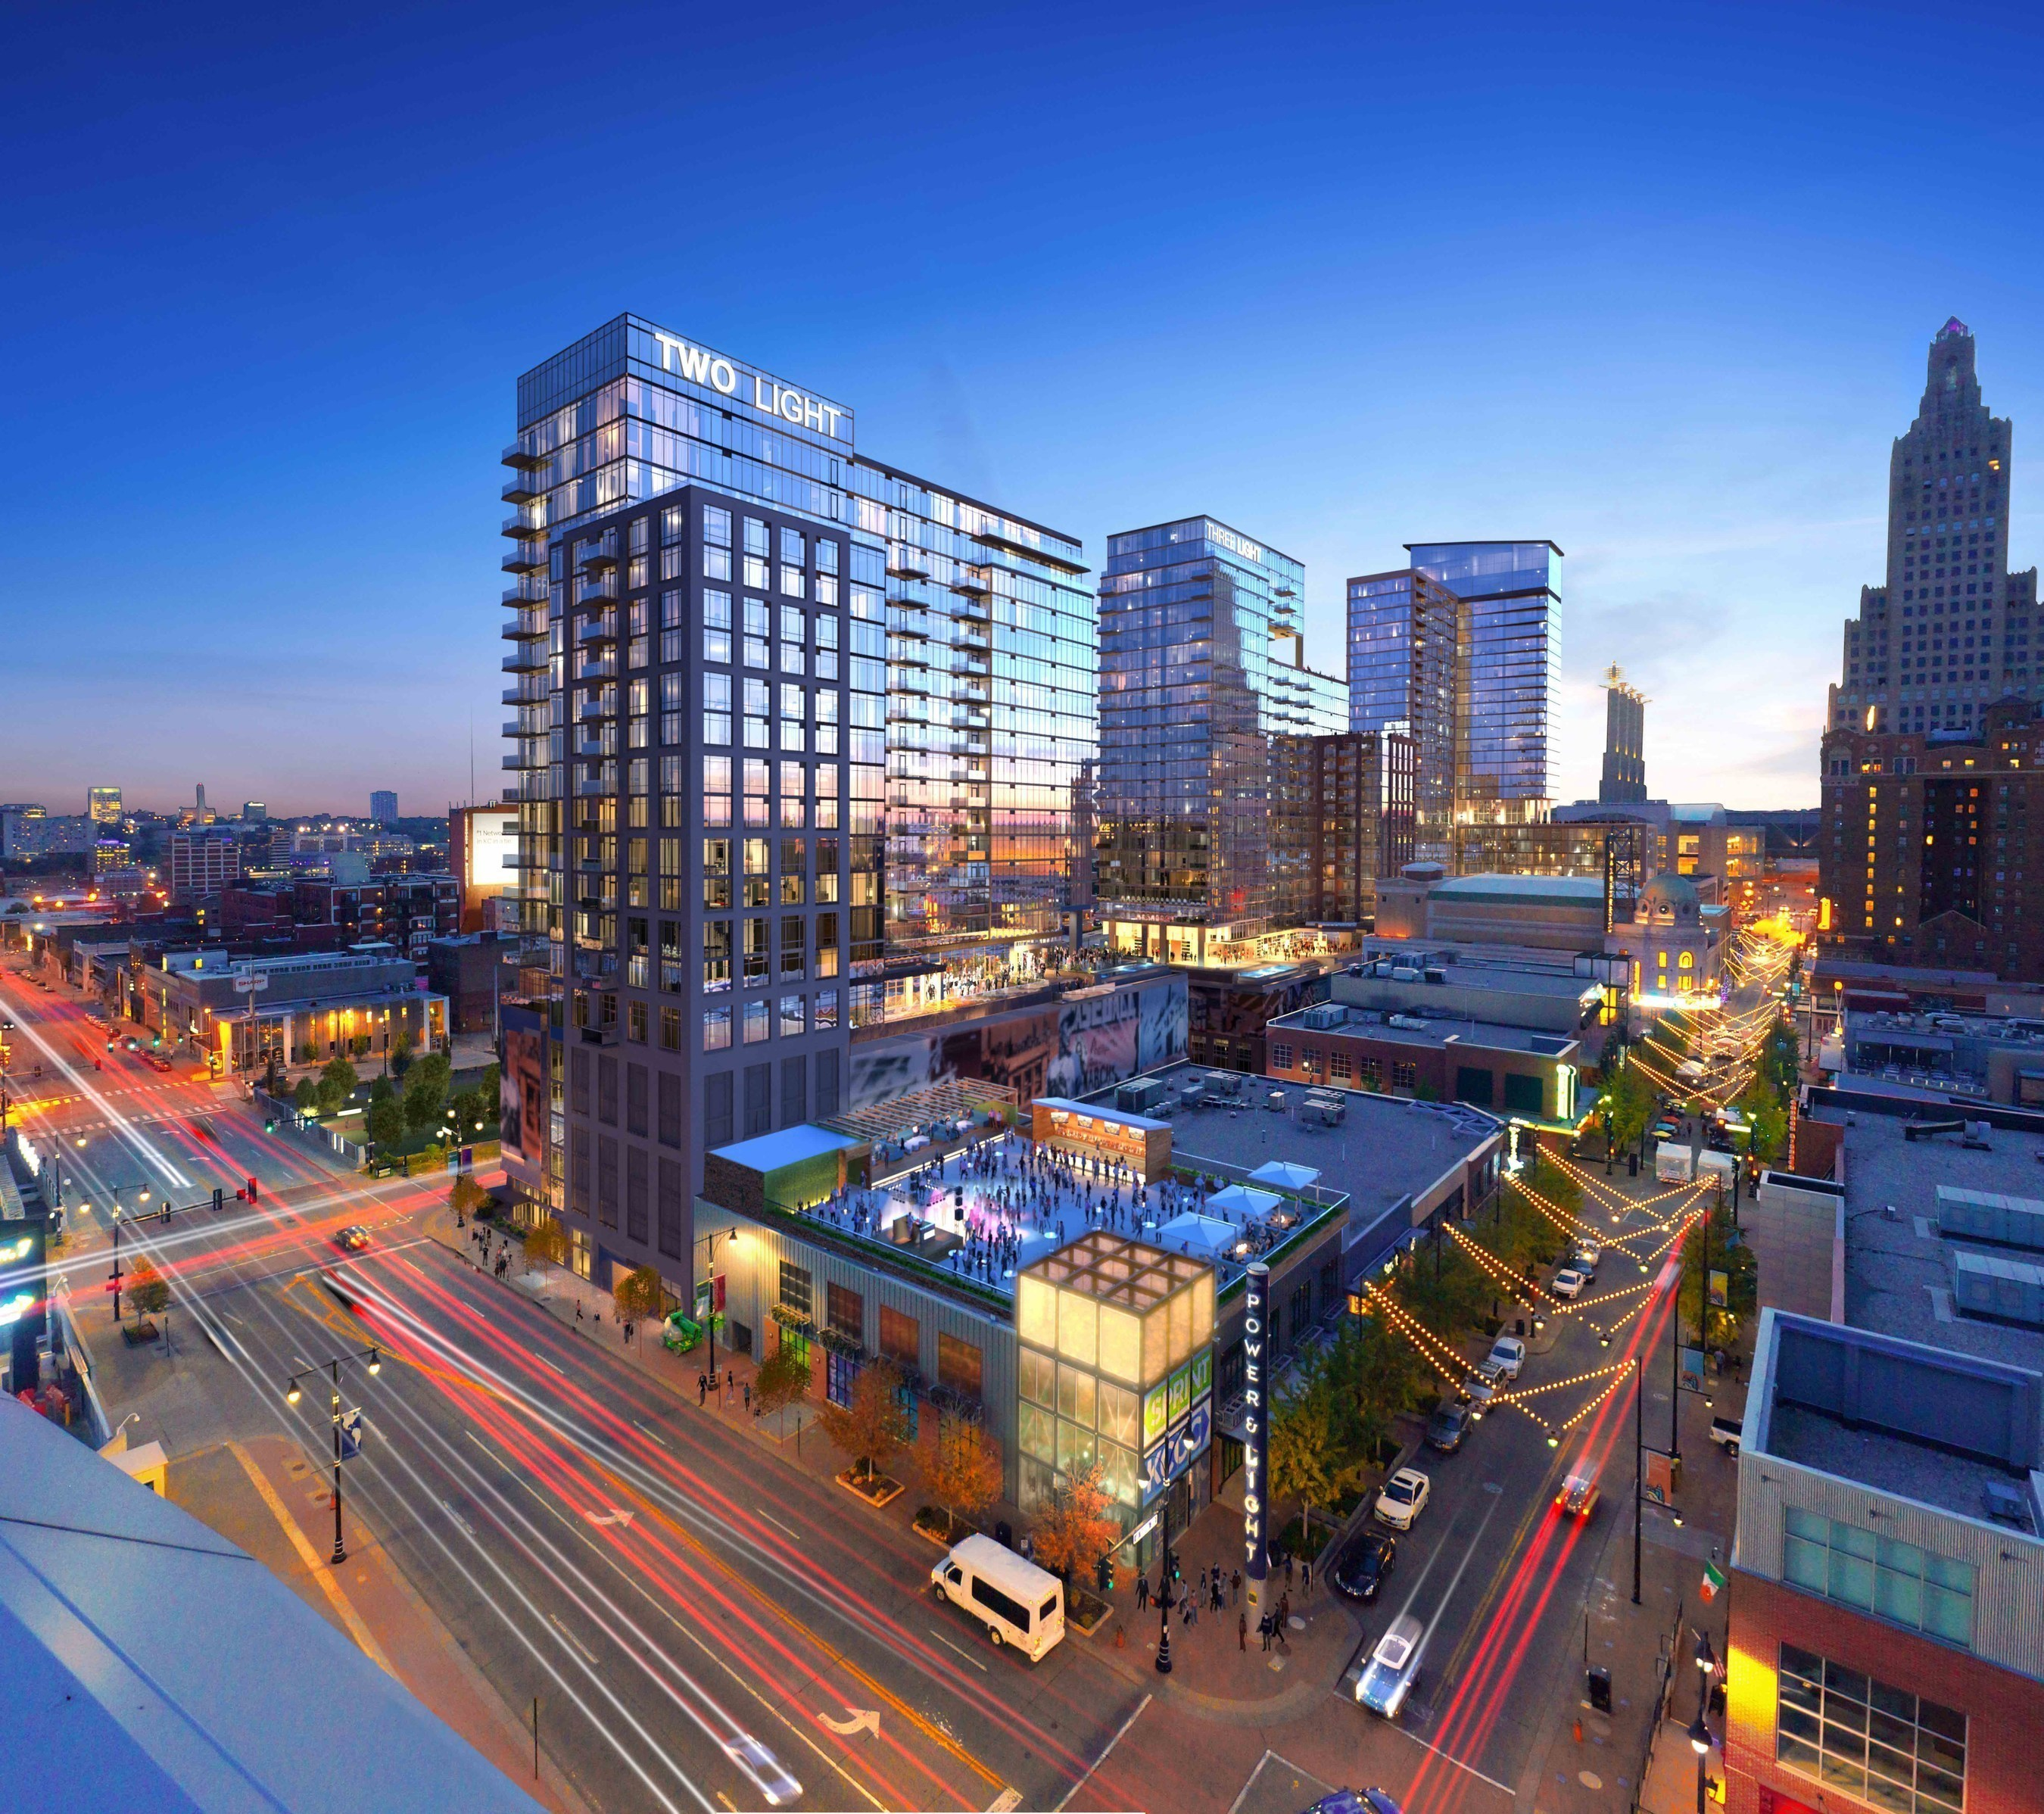 Scheduled to open Spring 2018, Two Light will join One Light as the second new construction high-rise apartment building in the last 50 years in downtown Kansas City, MO